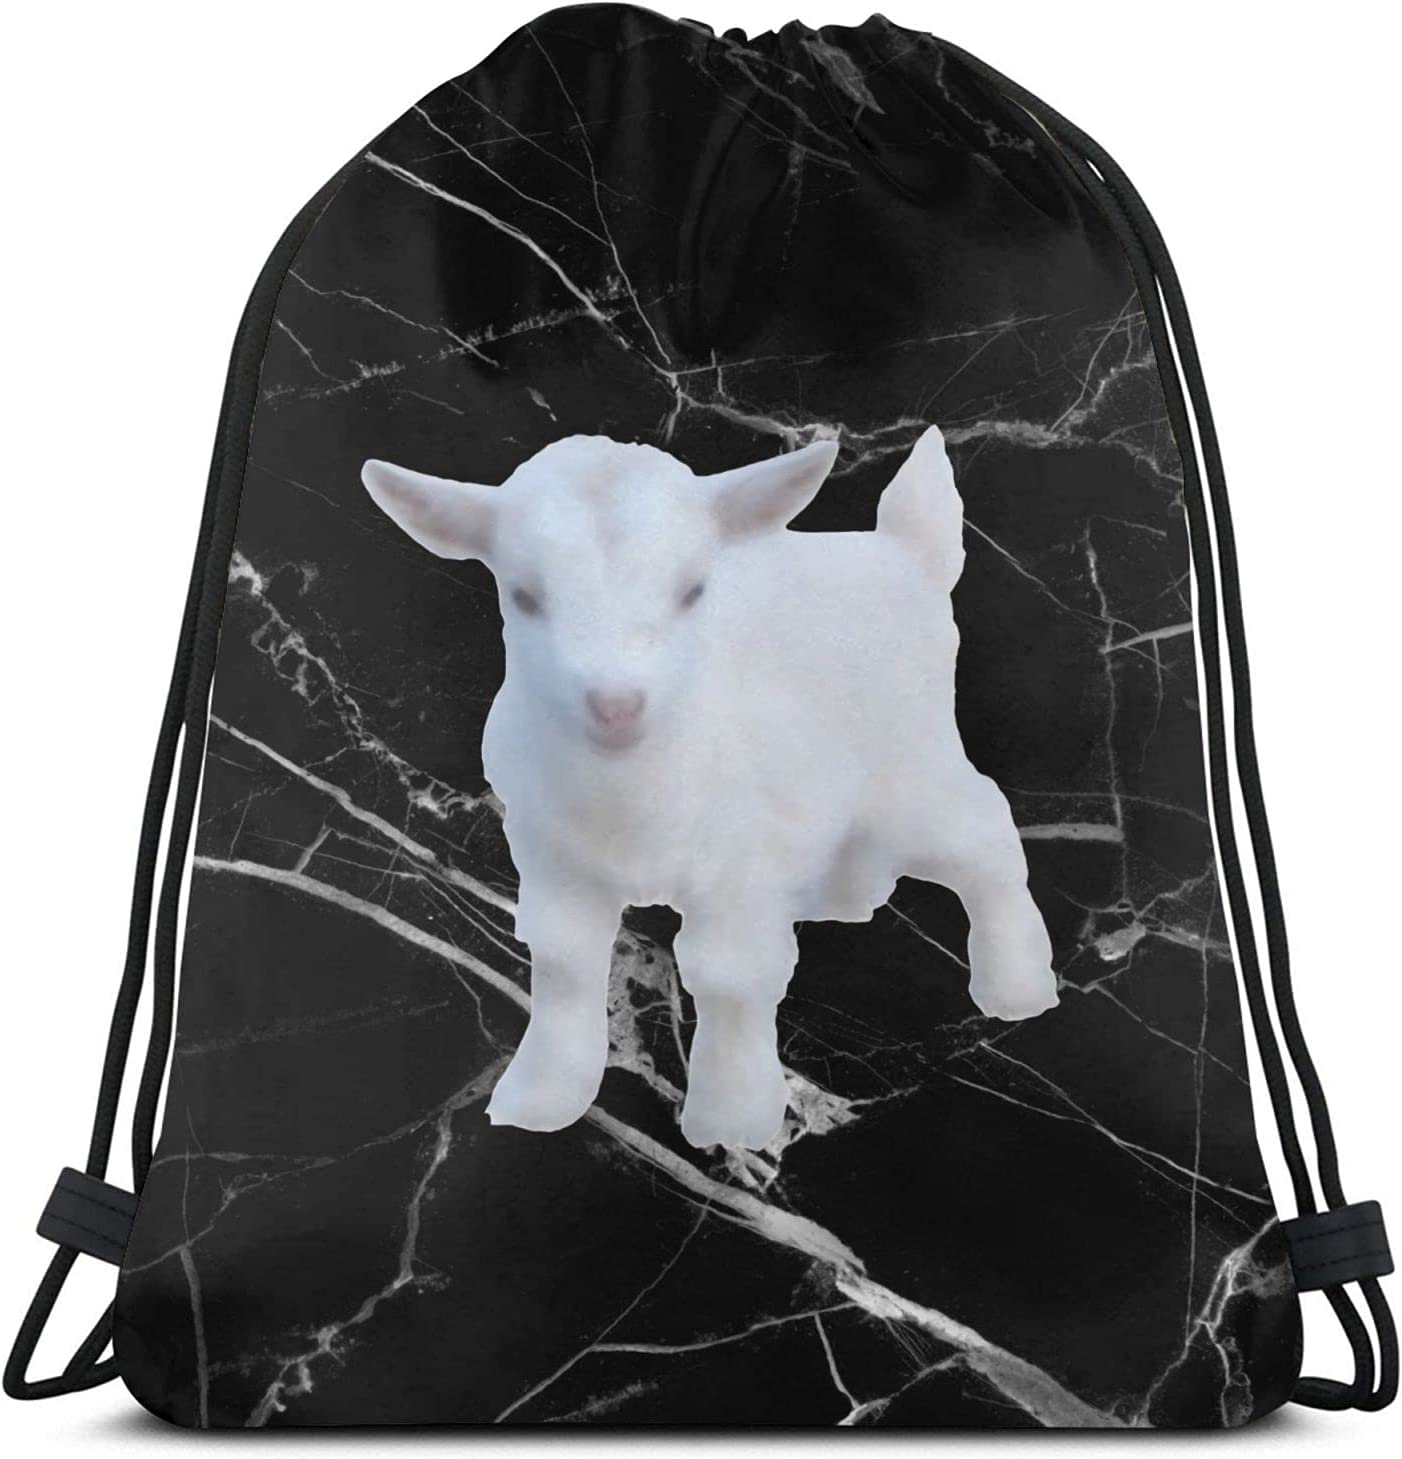 Lamb Drawstring Backpack 25% OFF trust String Bag Sackpack Gym Workout Bags fo